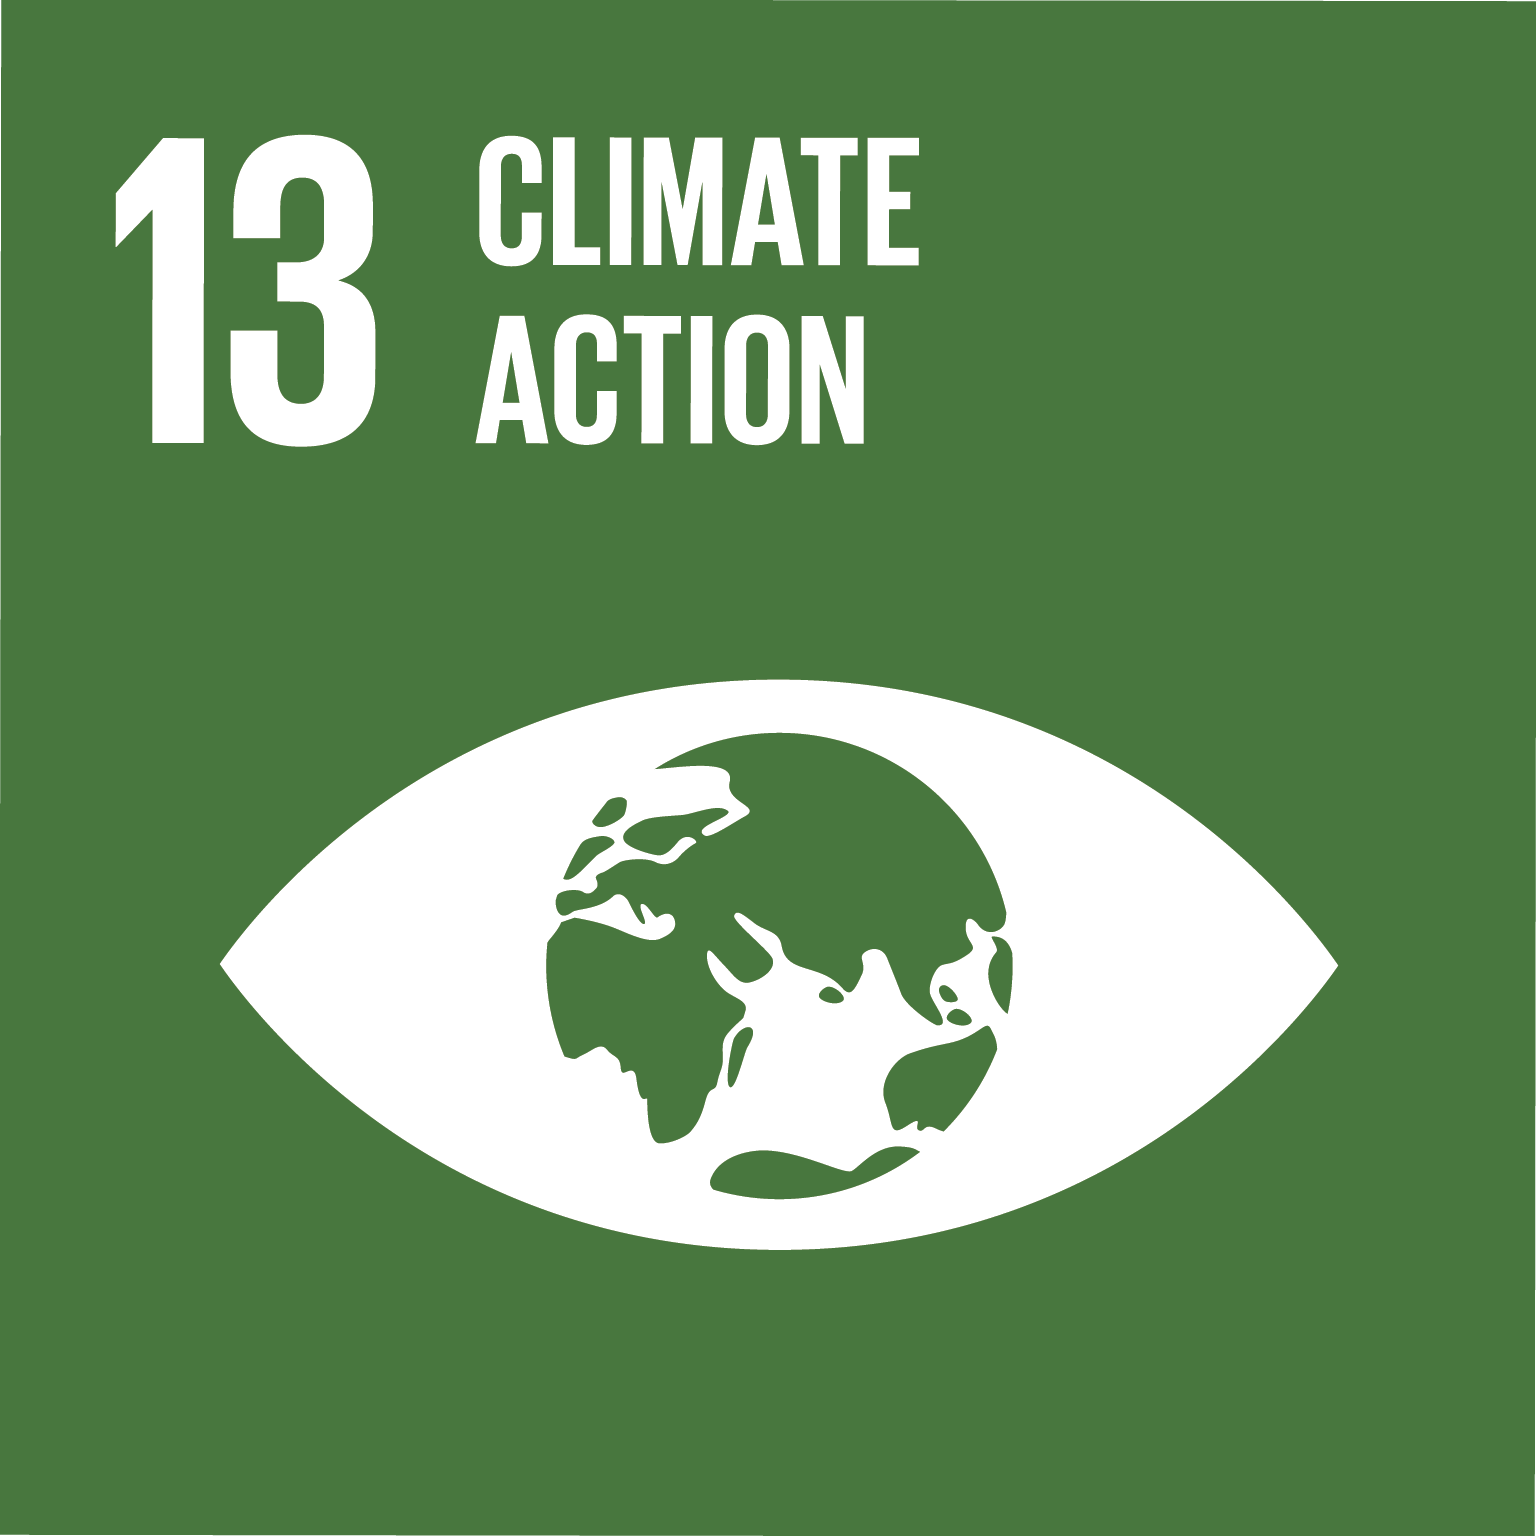 Climate Action - Take urgent action to combat climate change and its impacts